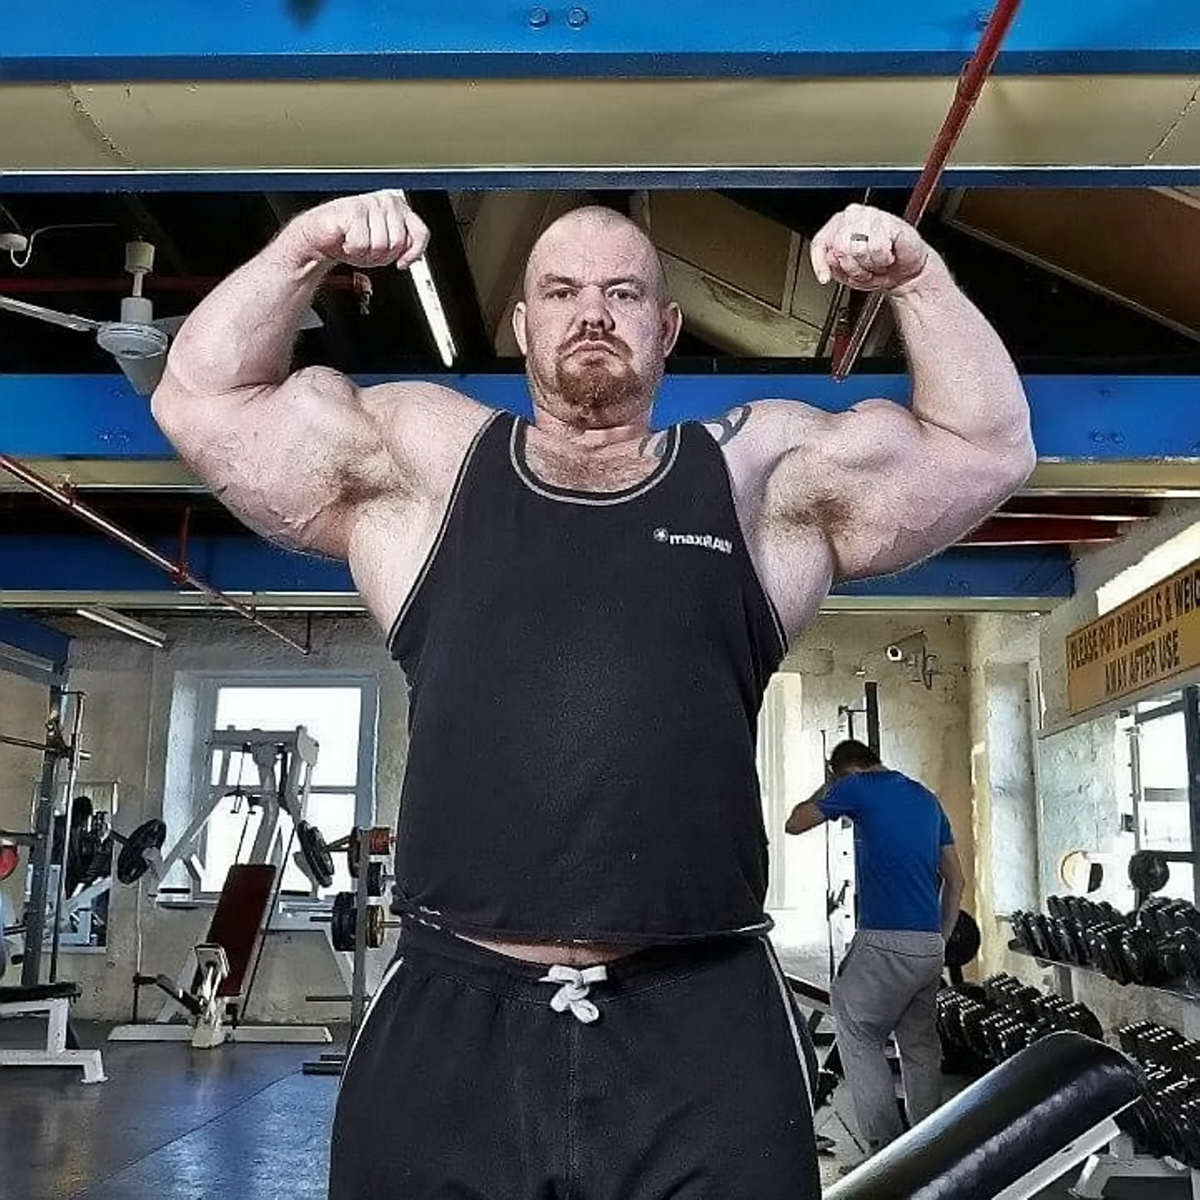 Man Turns Life Around To Set Record For UKs Largest Biceps SWNS BIGGEST BICEPS 29